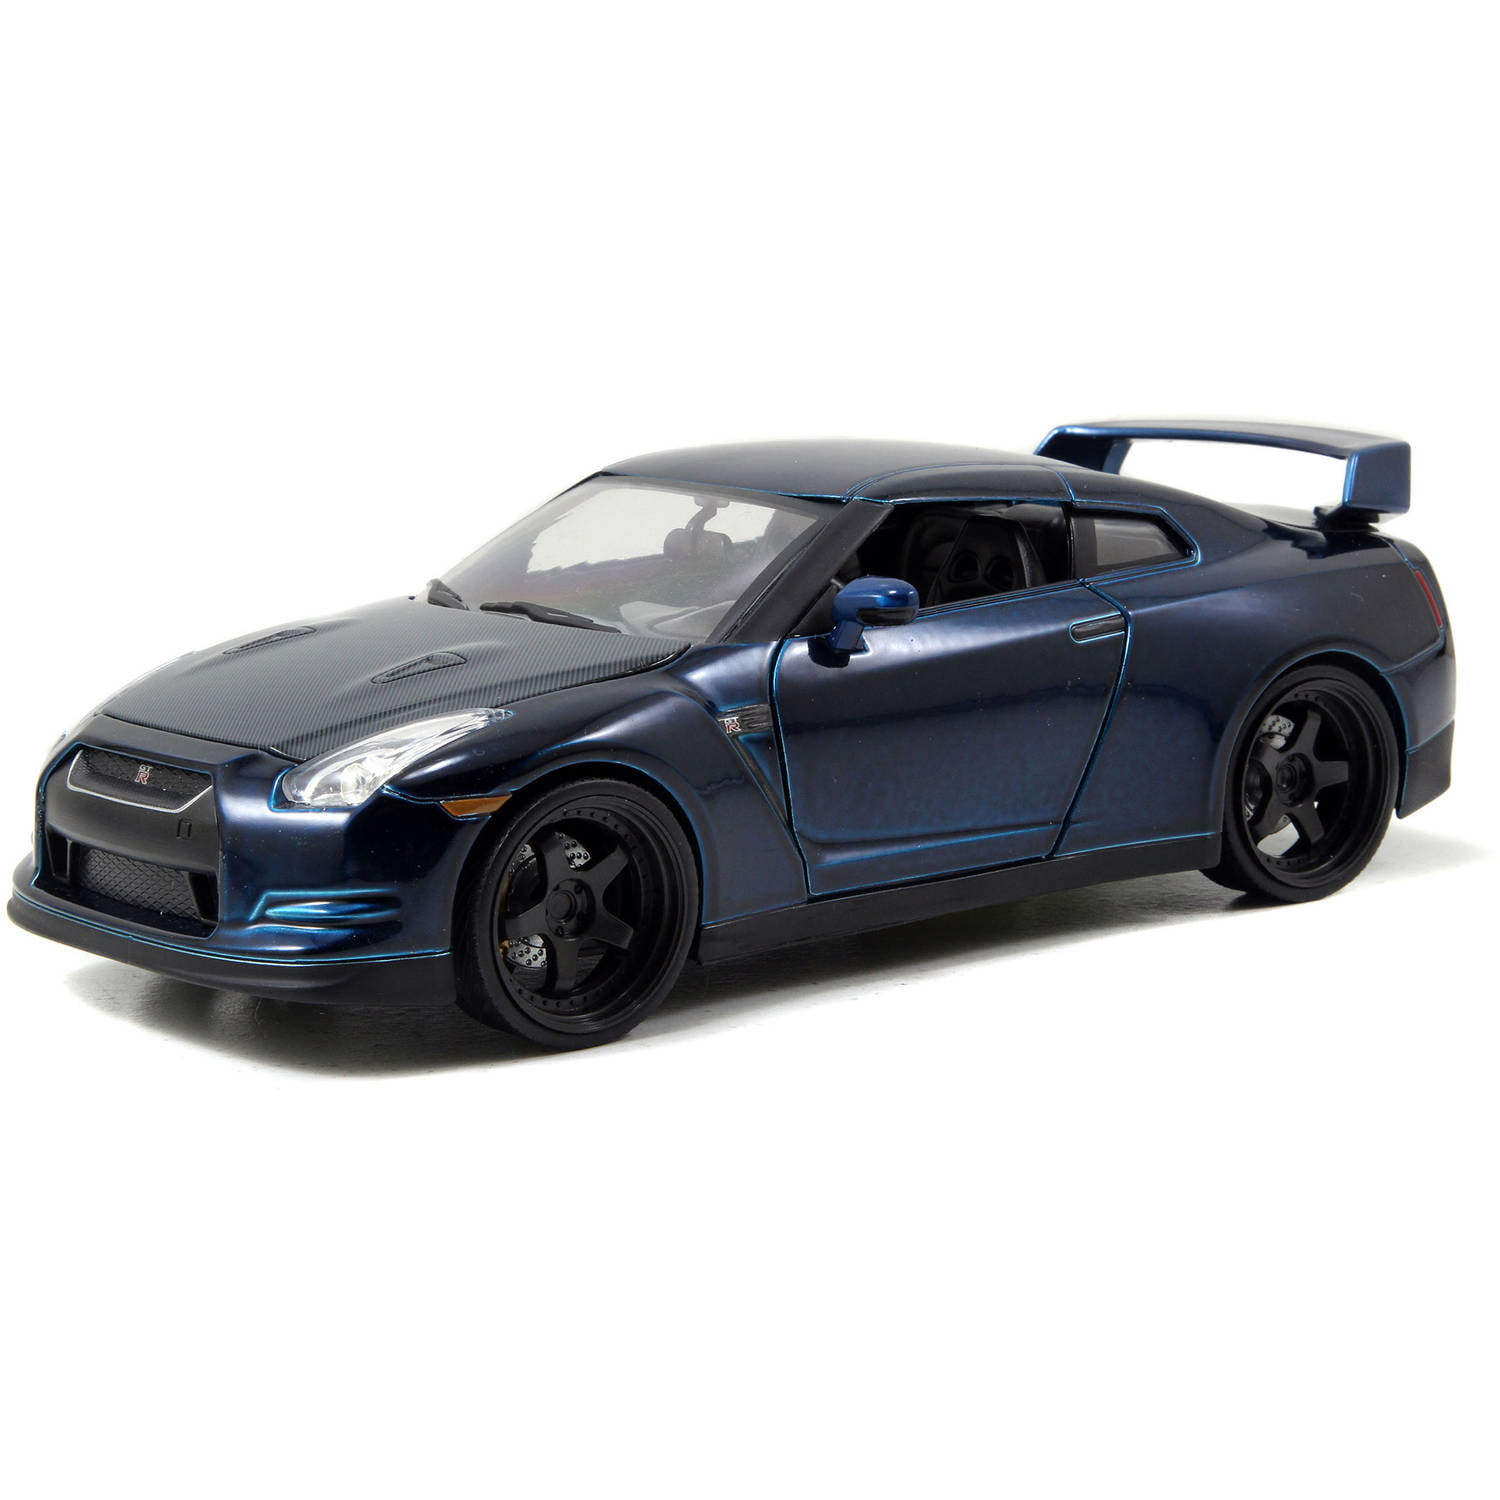 Jada Toys Fast and Furious 1 24 Die Cast Nissan GT-R by Jada